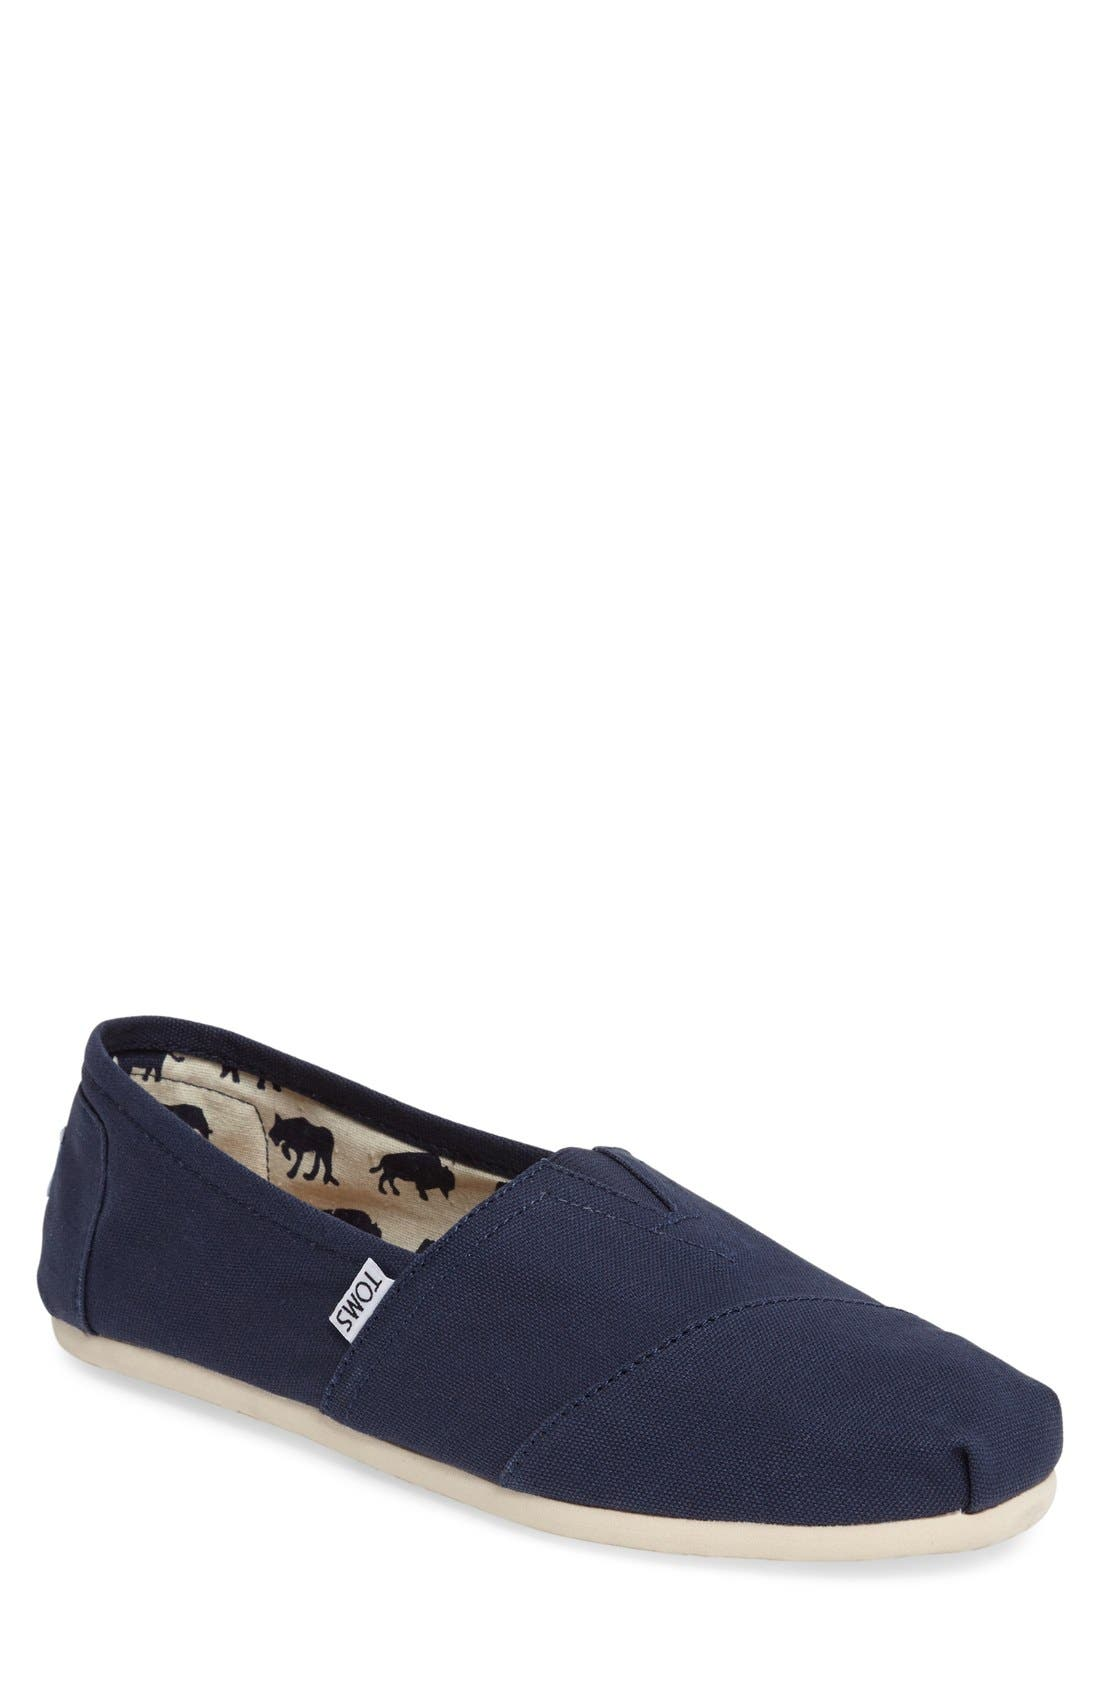 Main Image - TOMS 'Classic' Canvas Slip-On   (Men)